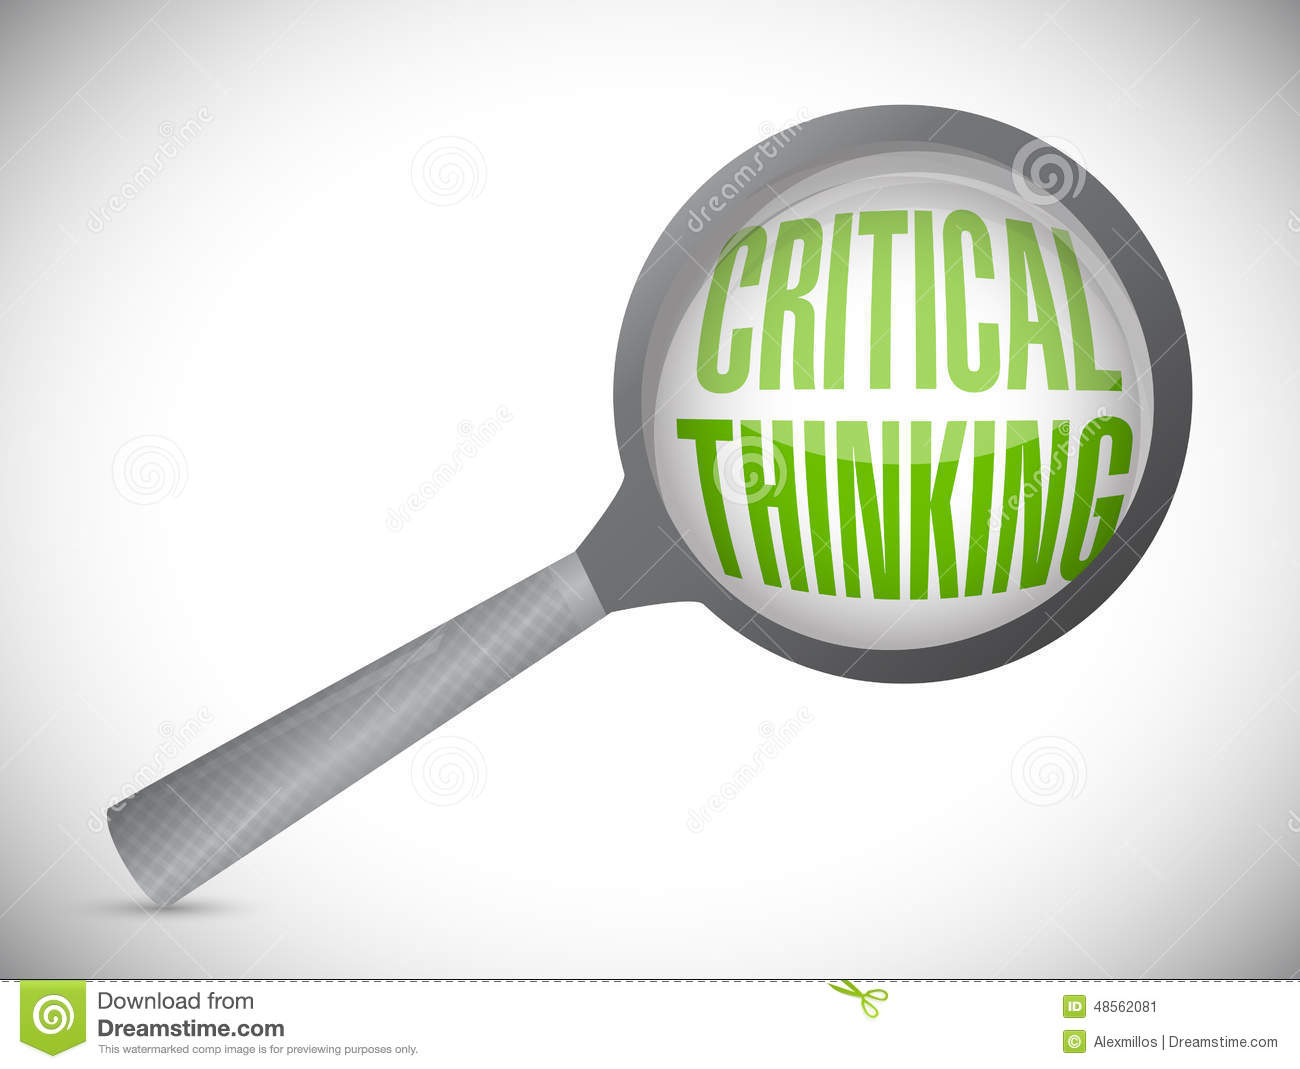 faqs on review and critical thinking Critical thinking skills for university success from the university of sydney in this course, you will learn how to develop your critical thinking skills to help you achieve success in your university studies see all reviews enroll you may also like duke university.